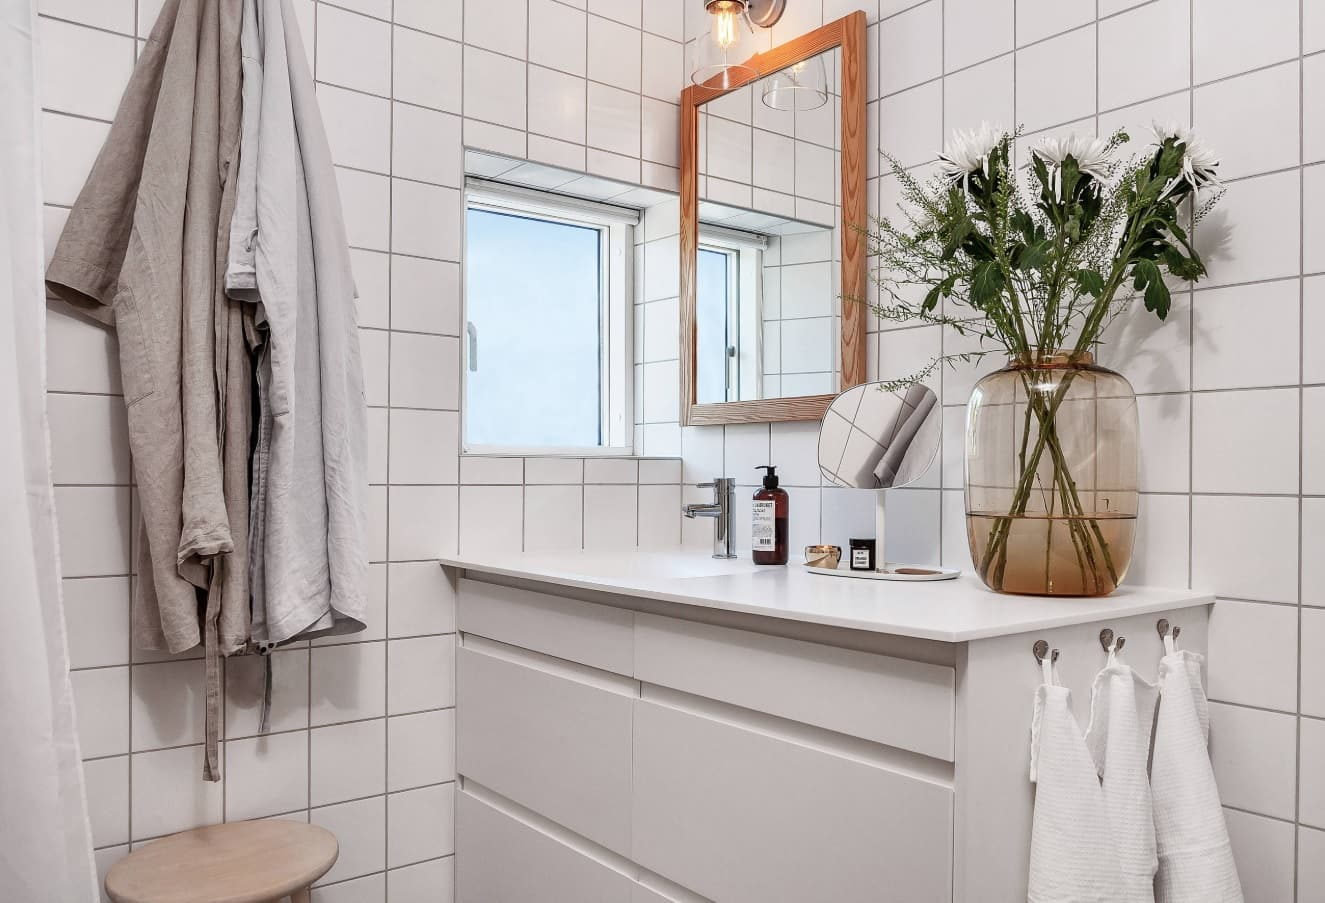 Nordic Interior Design Examples in Real Homes Photos. Metro tile in the bathroom with smooth vanity